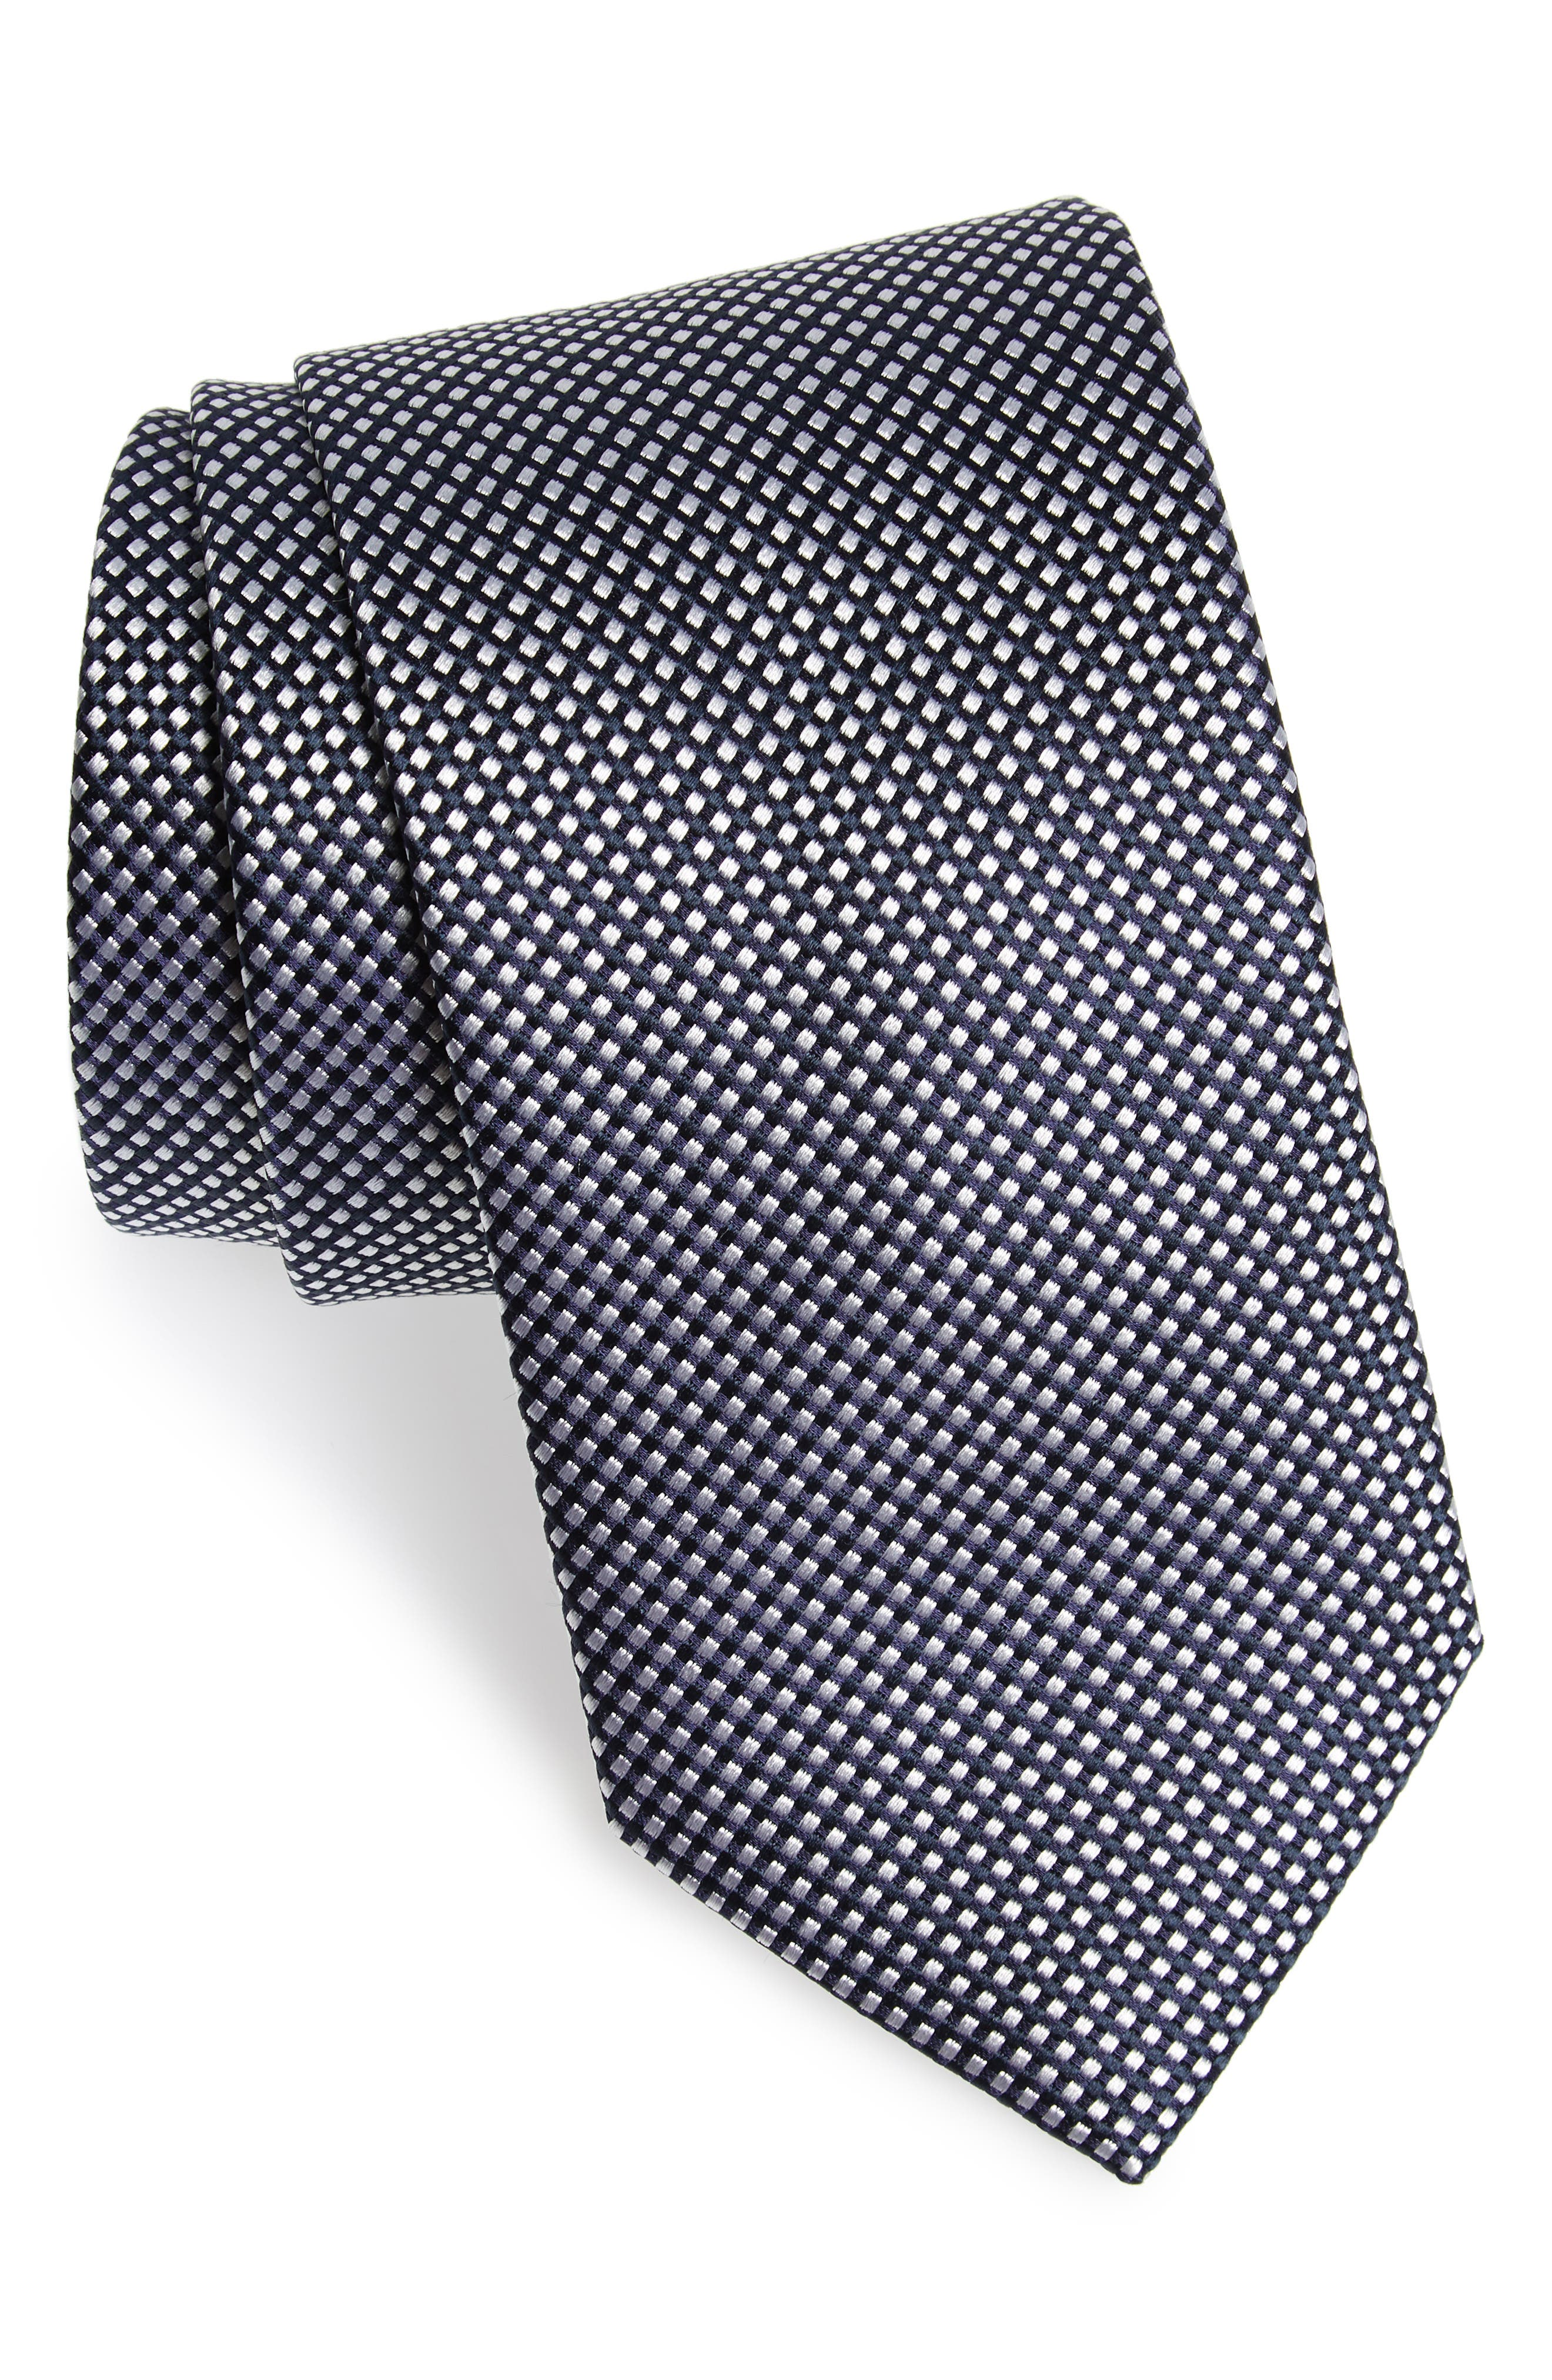 Check Silk Tie,                             Main thumbnail 1, color,                             BLACK